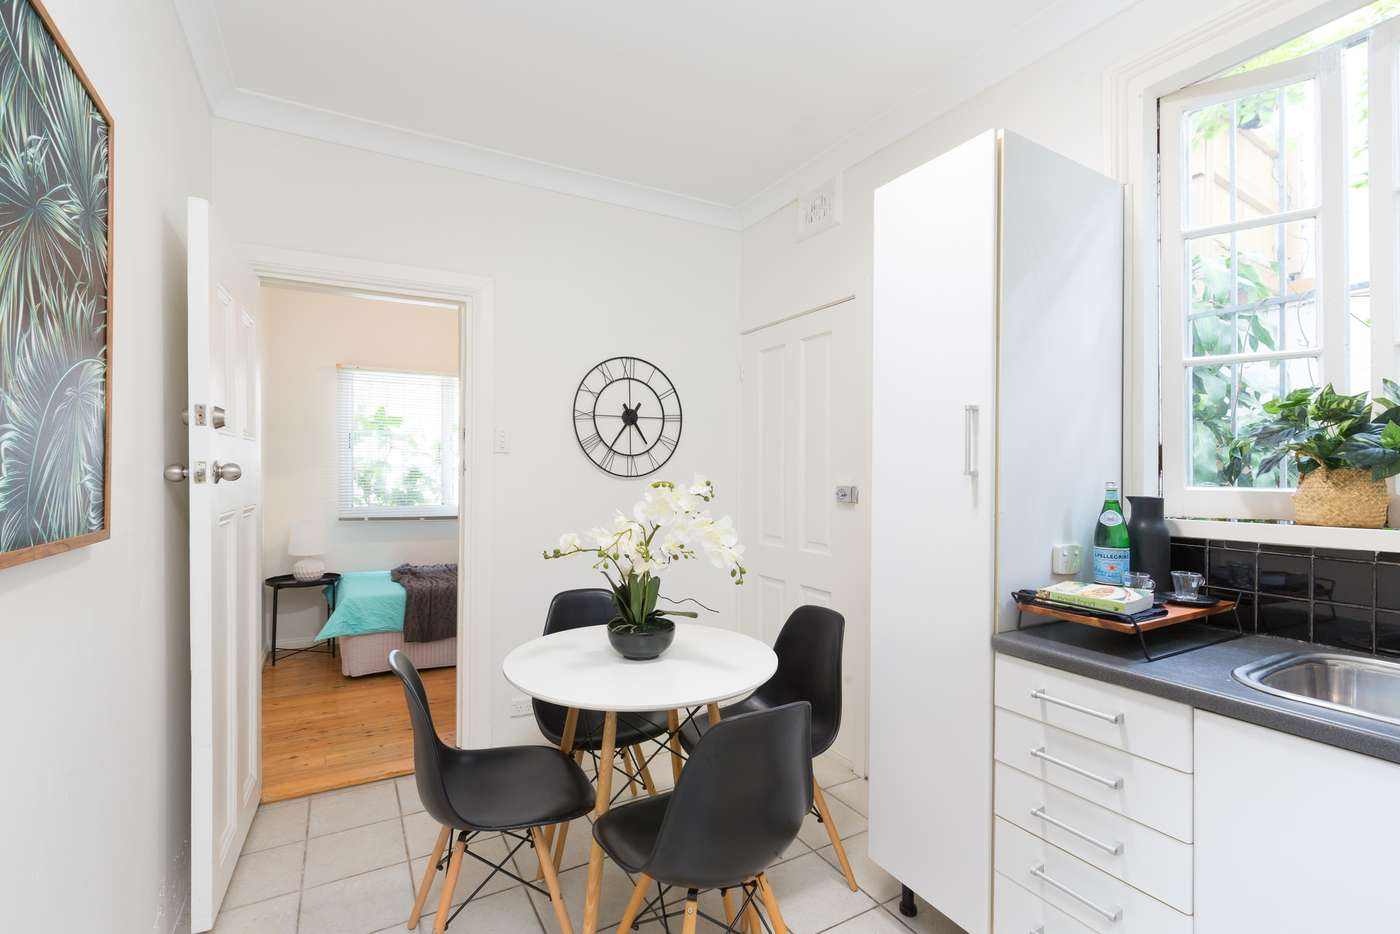 Fifth view of Homely house listing, 9-9A Hughes Street, Potts Point NSW 2011